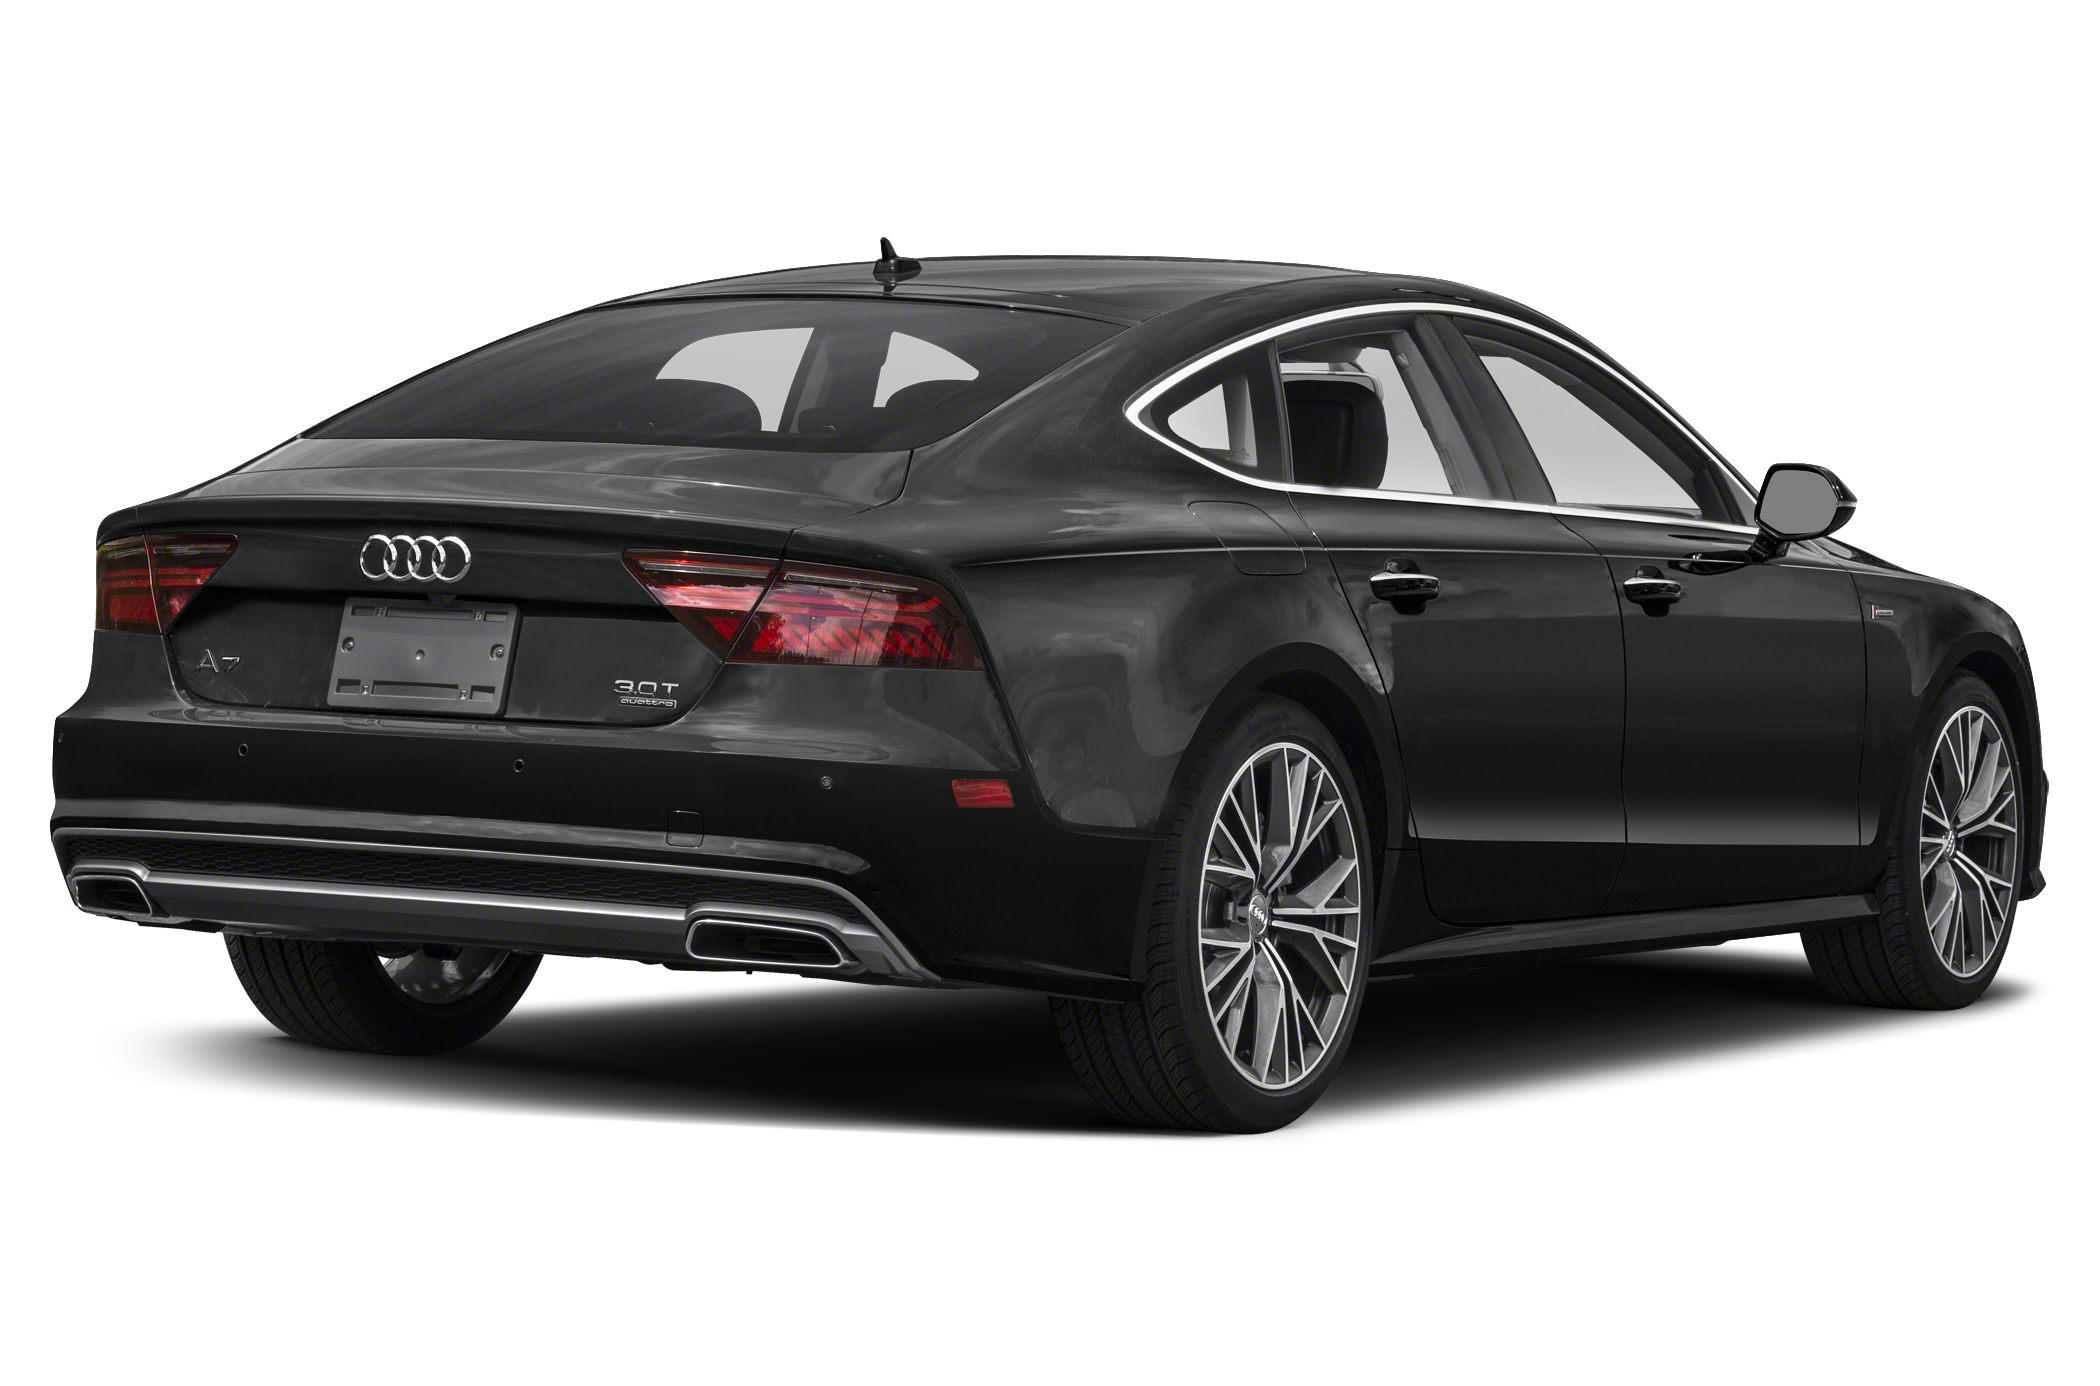 2018 Audi A7 Pictures & Photos - CarsDirect